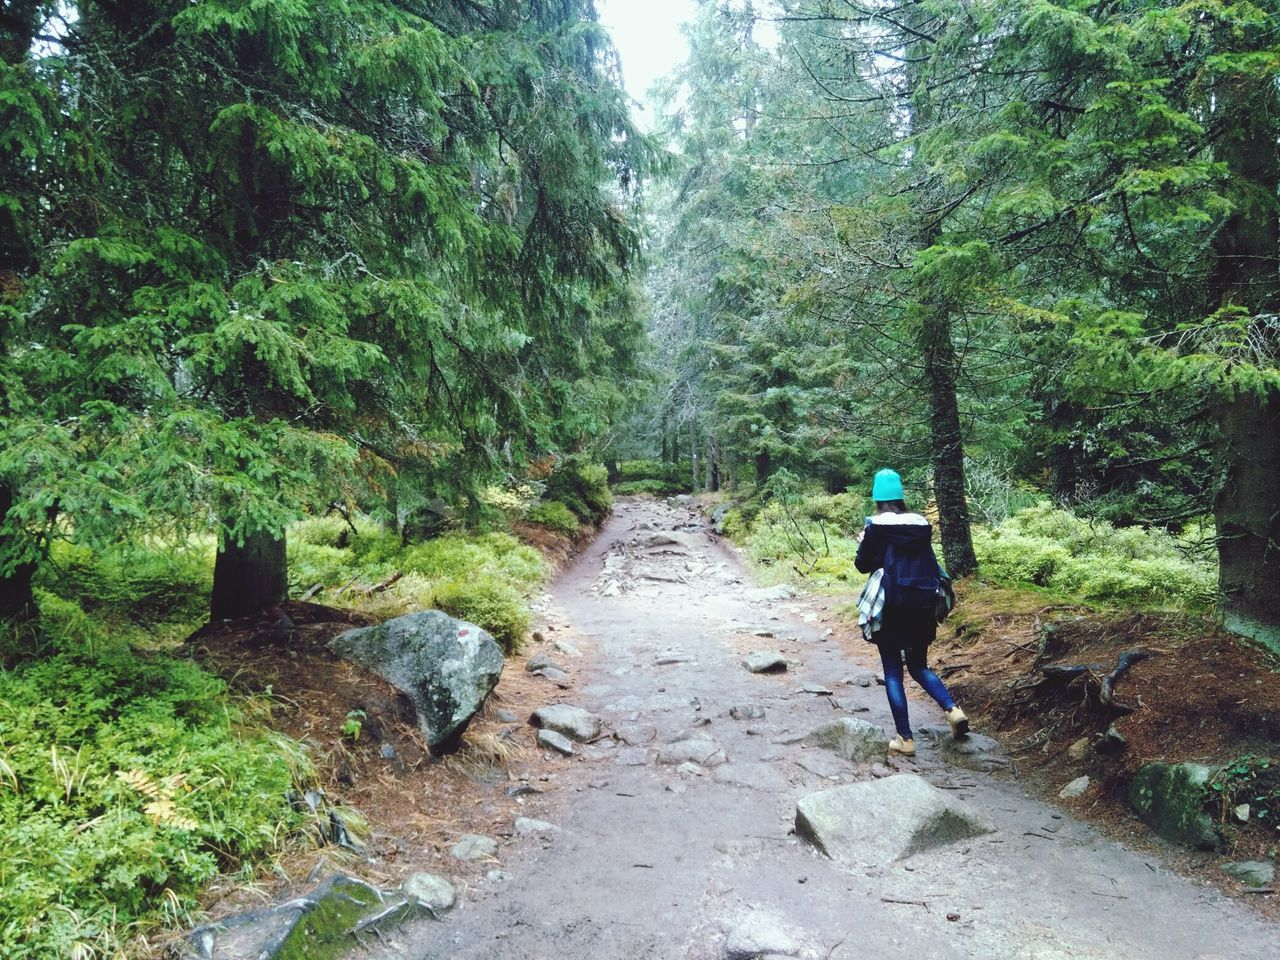 Collectingmoments Feel The Journey Slovakia Tatramountains Hiking Looking For Adventure Mountain_collection